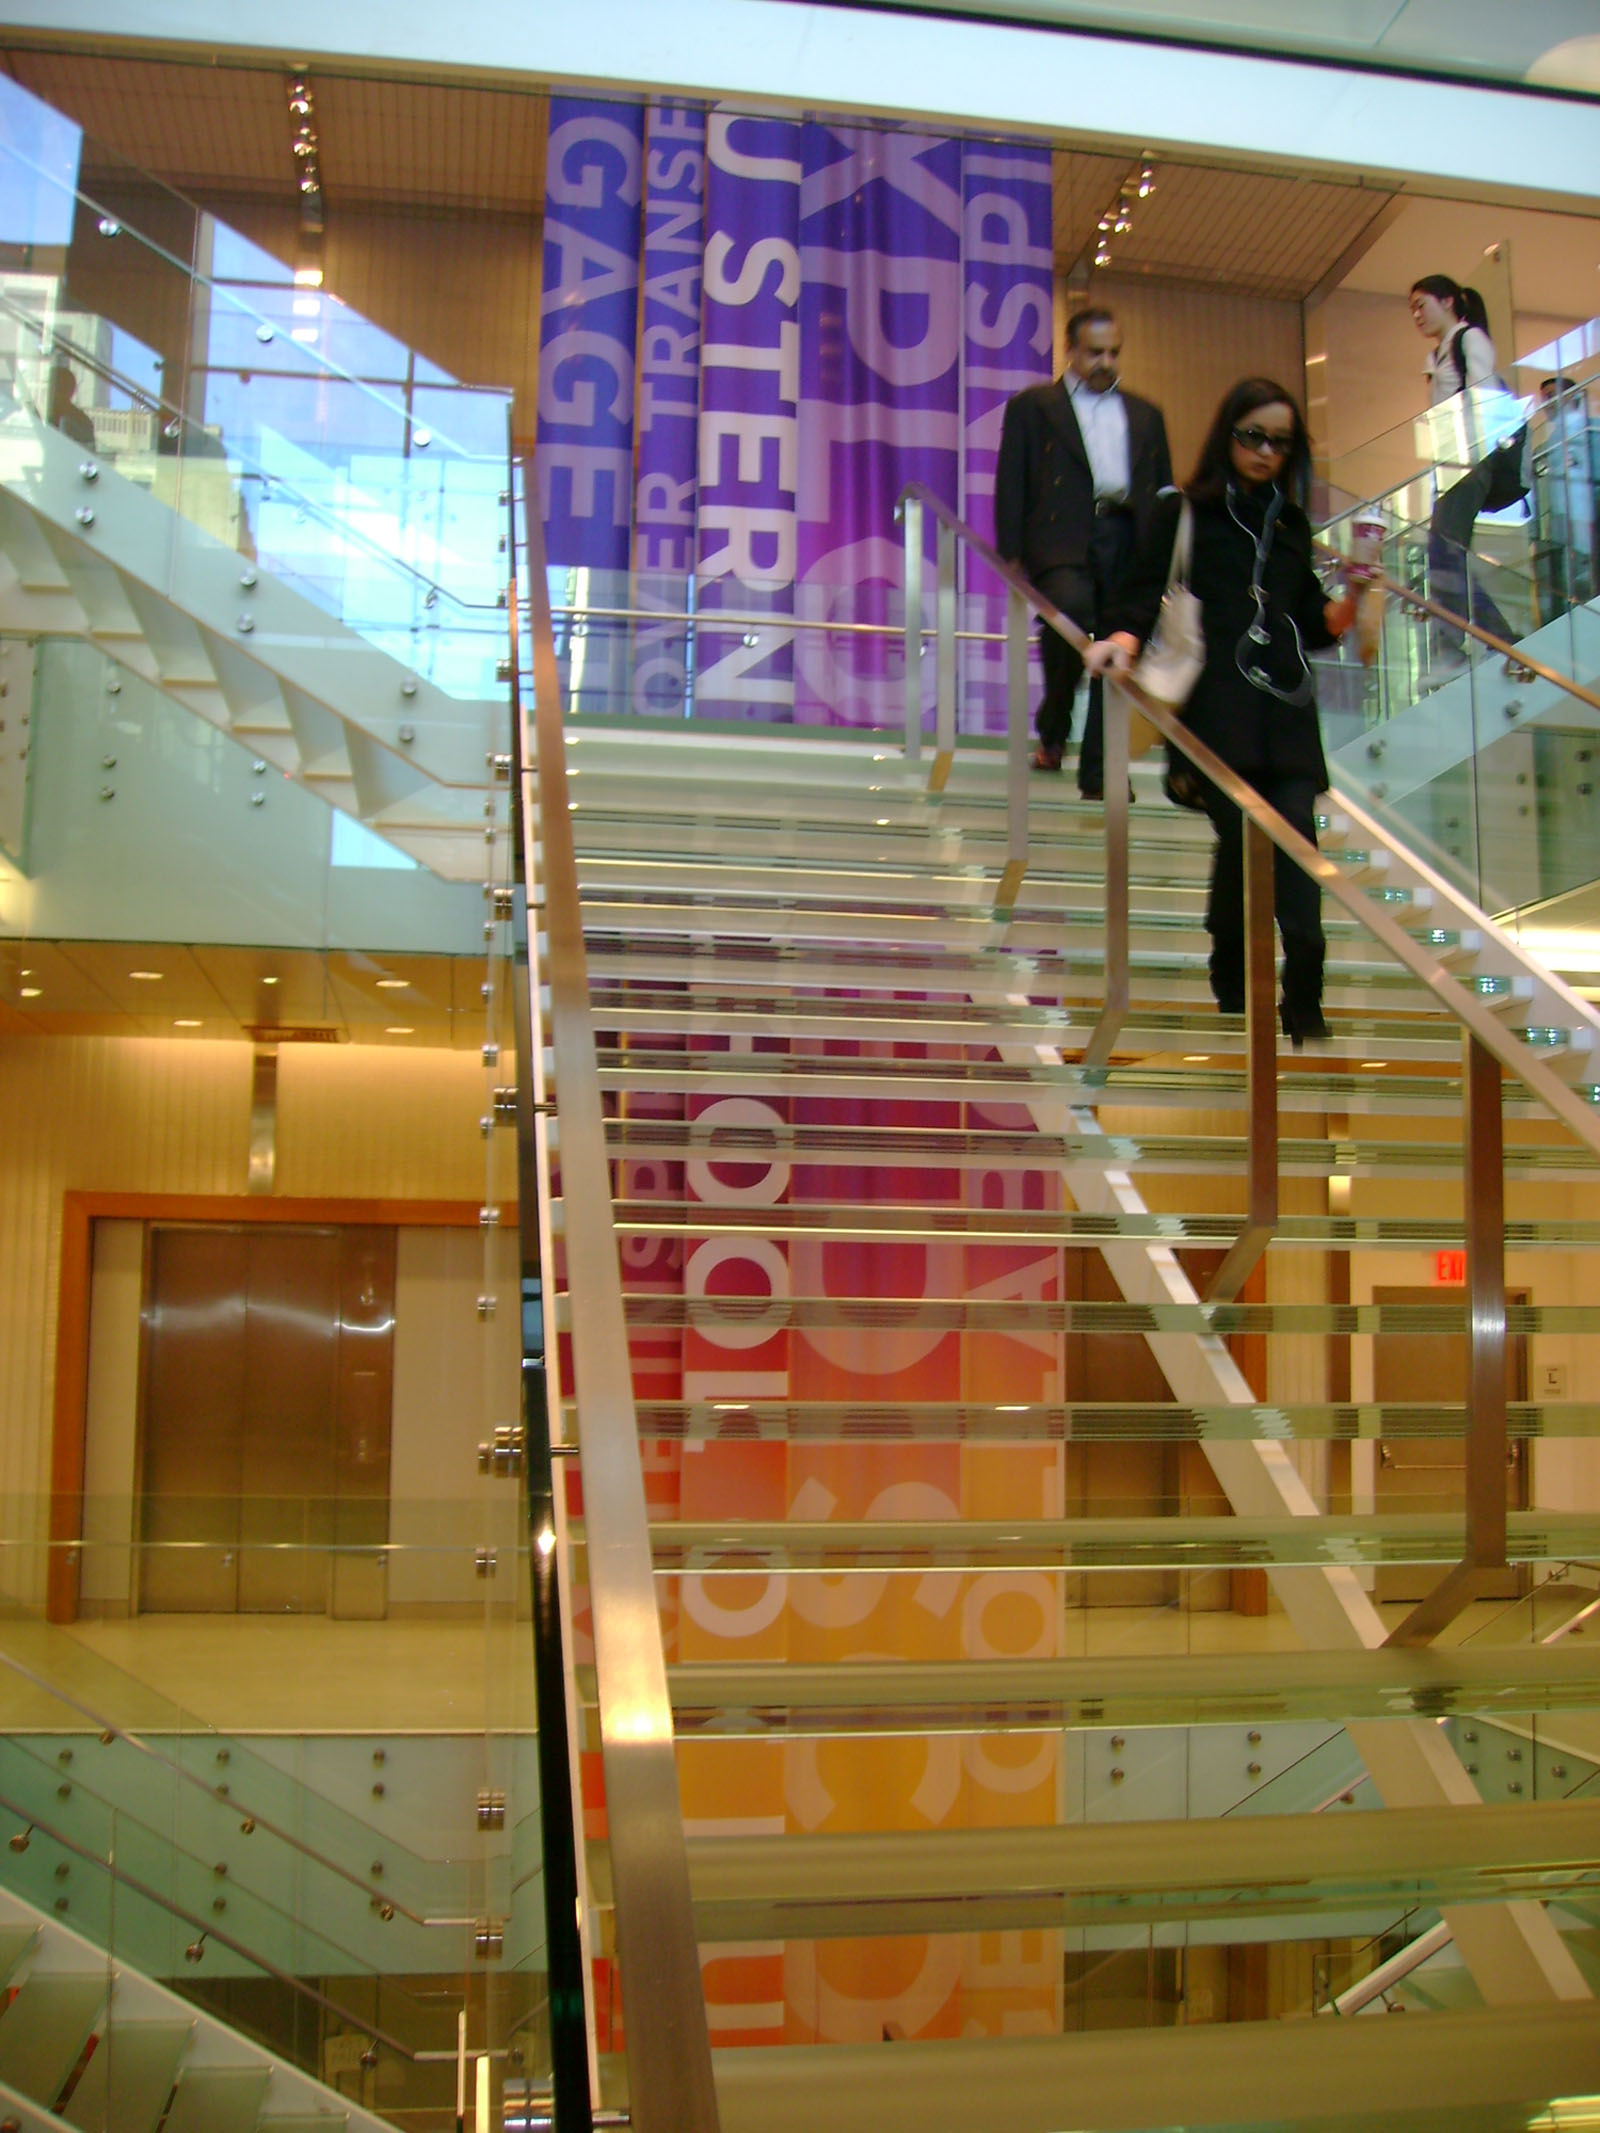 NYU Stern School of Business Lobby